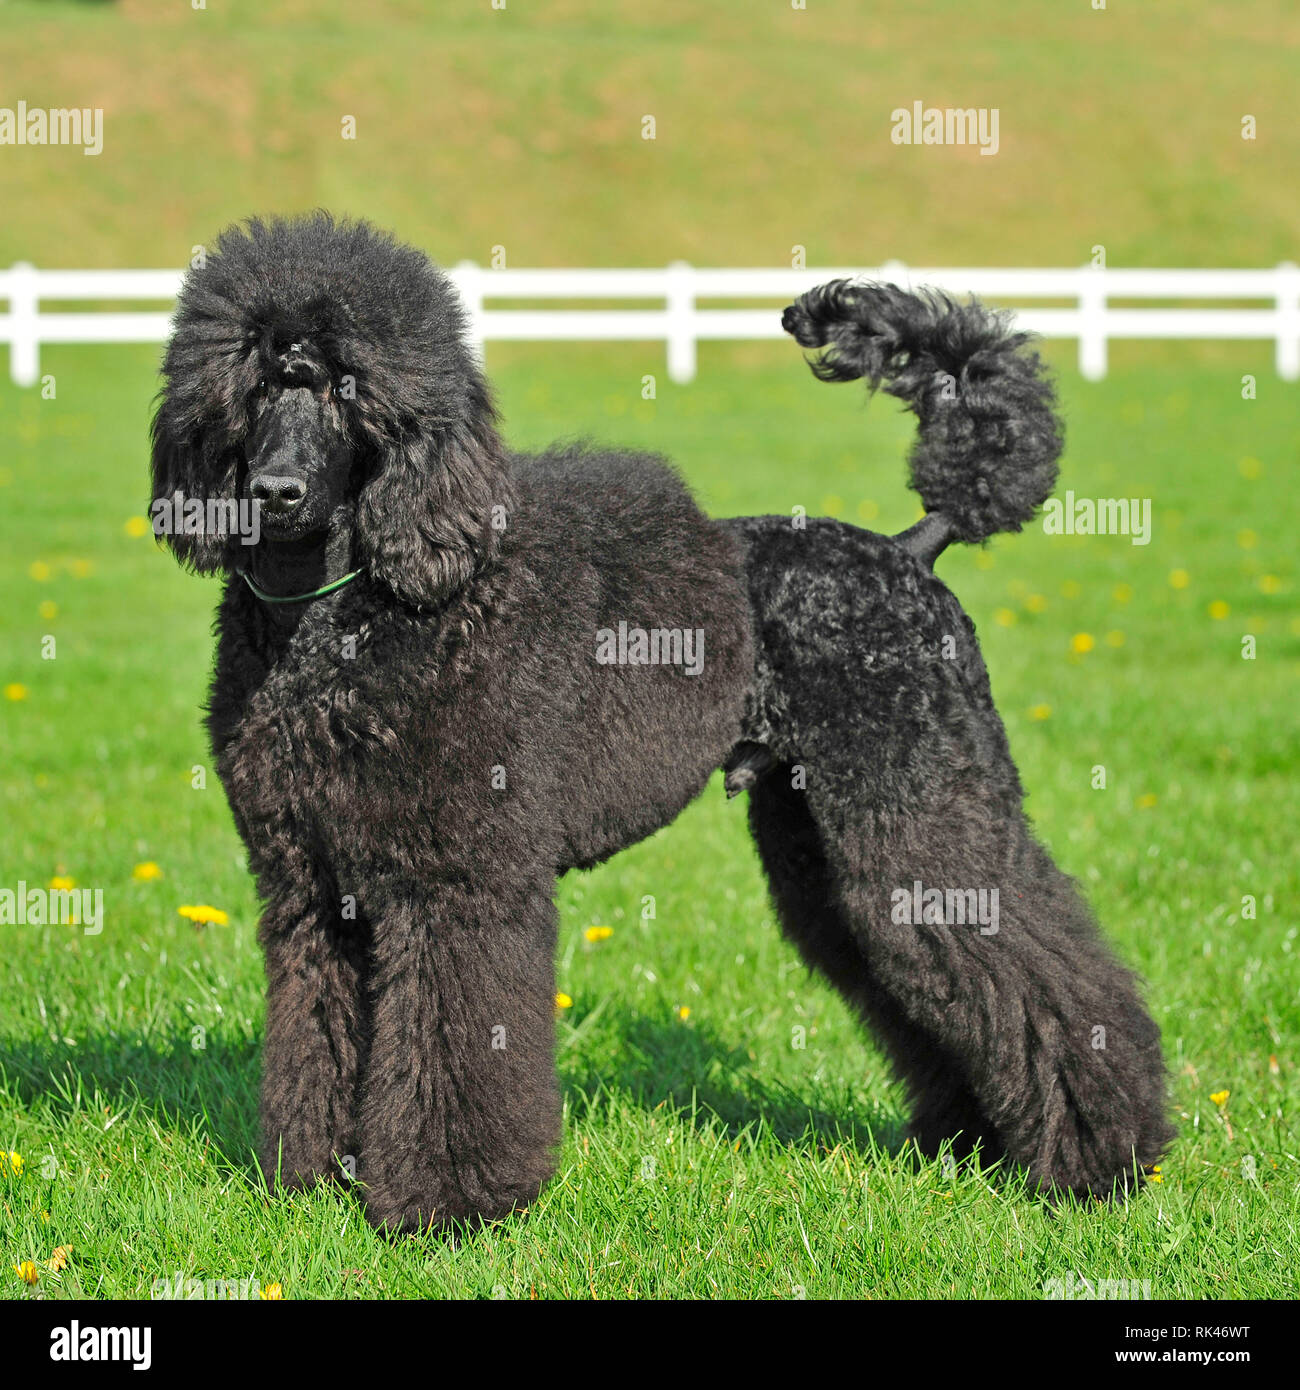 Poodle Haircut Stock Photos Poodle Haircut Stock Images